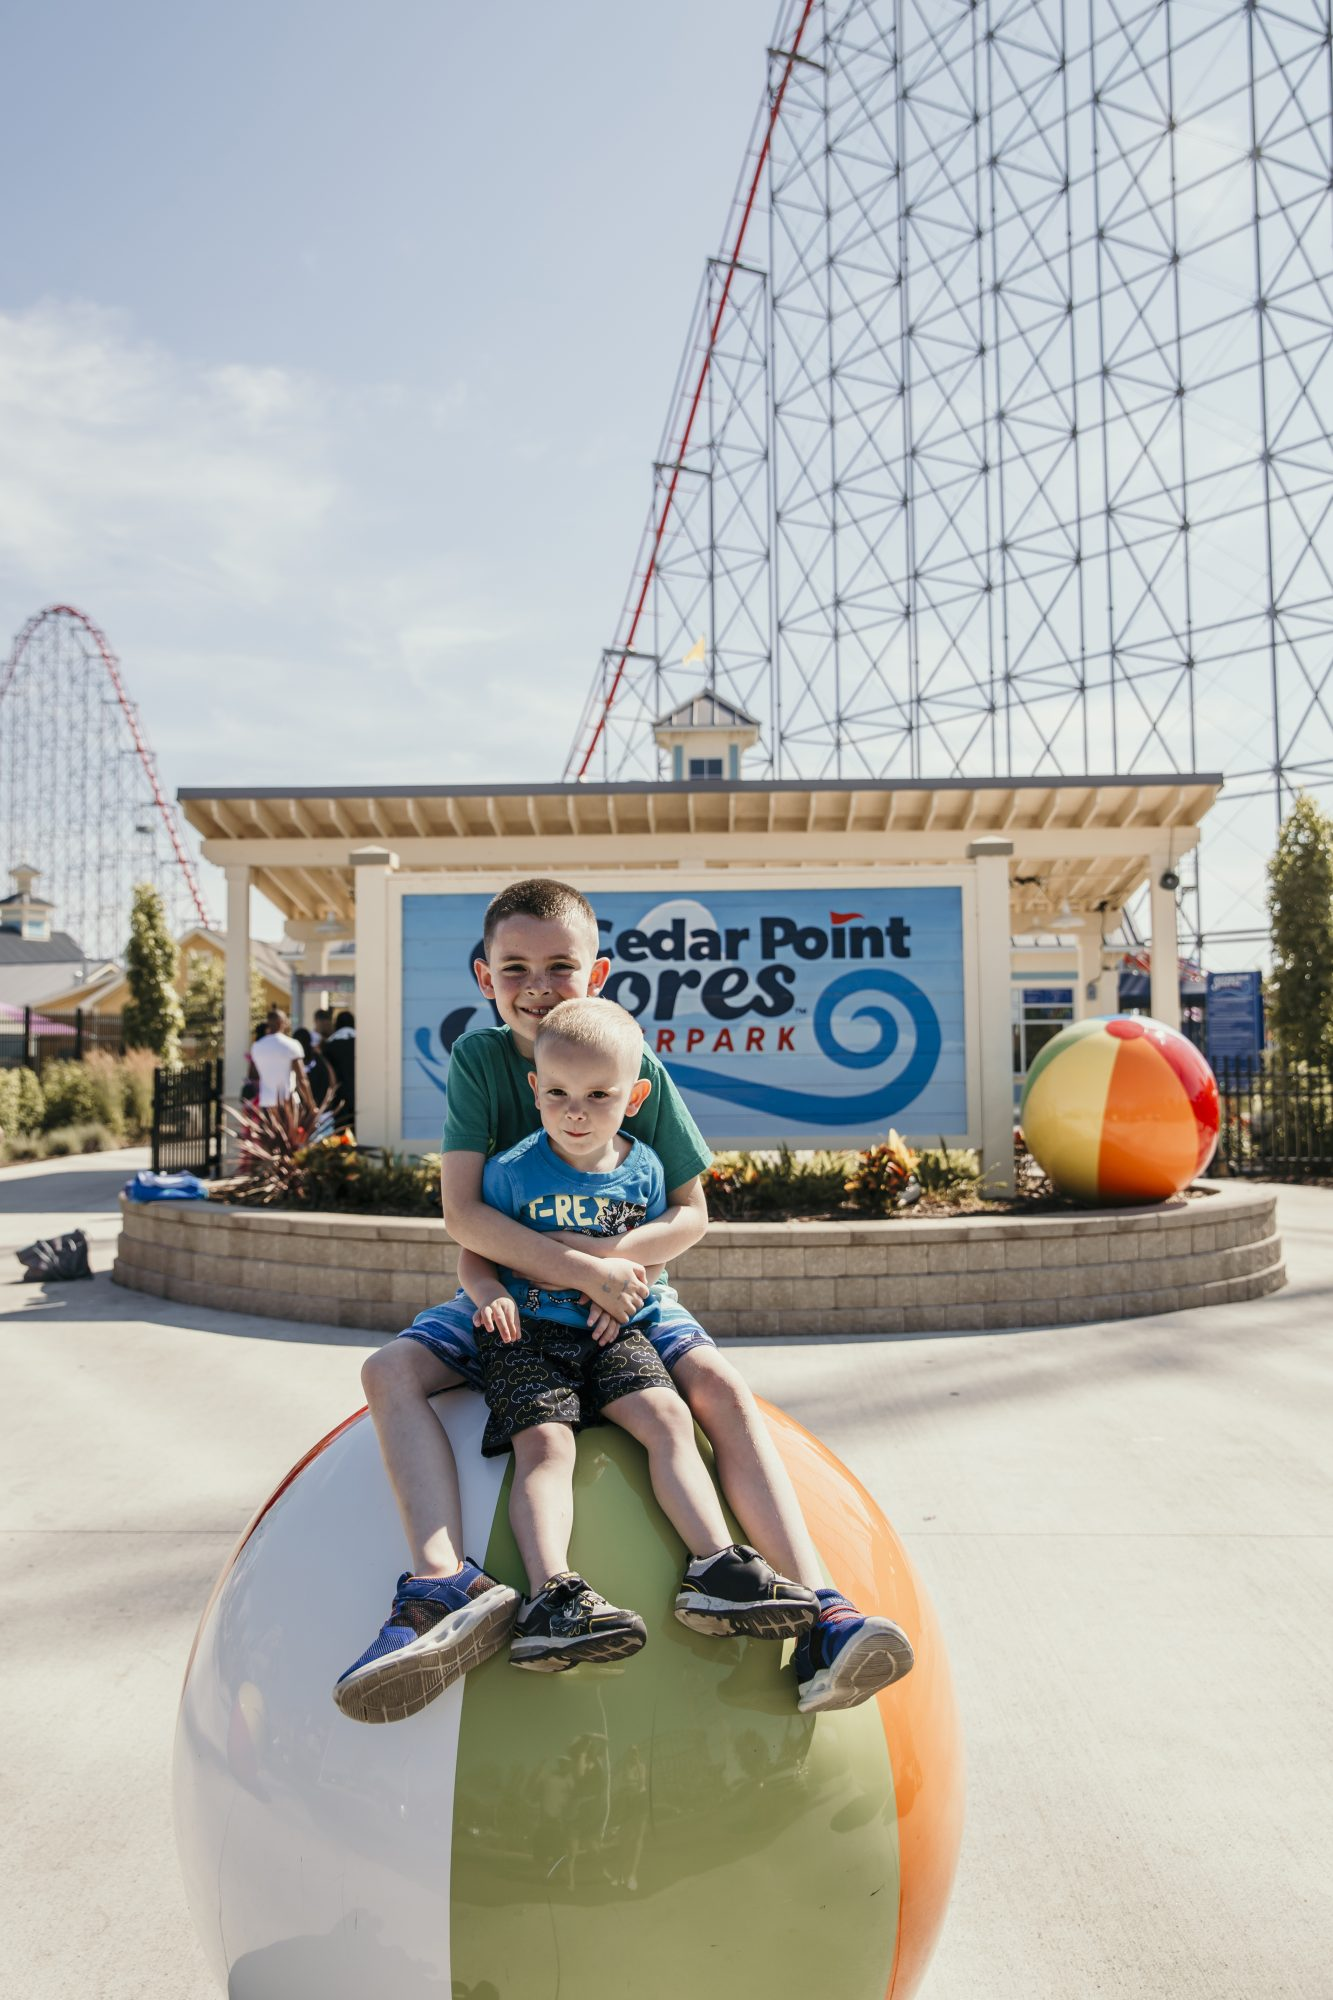 the boys in front of cedar point shores sign